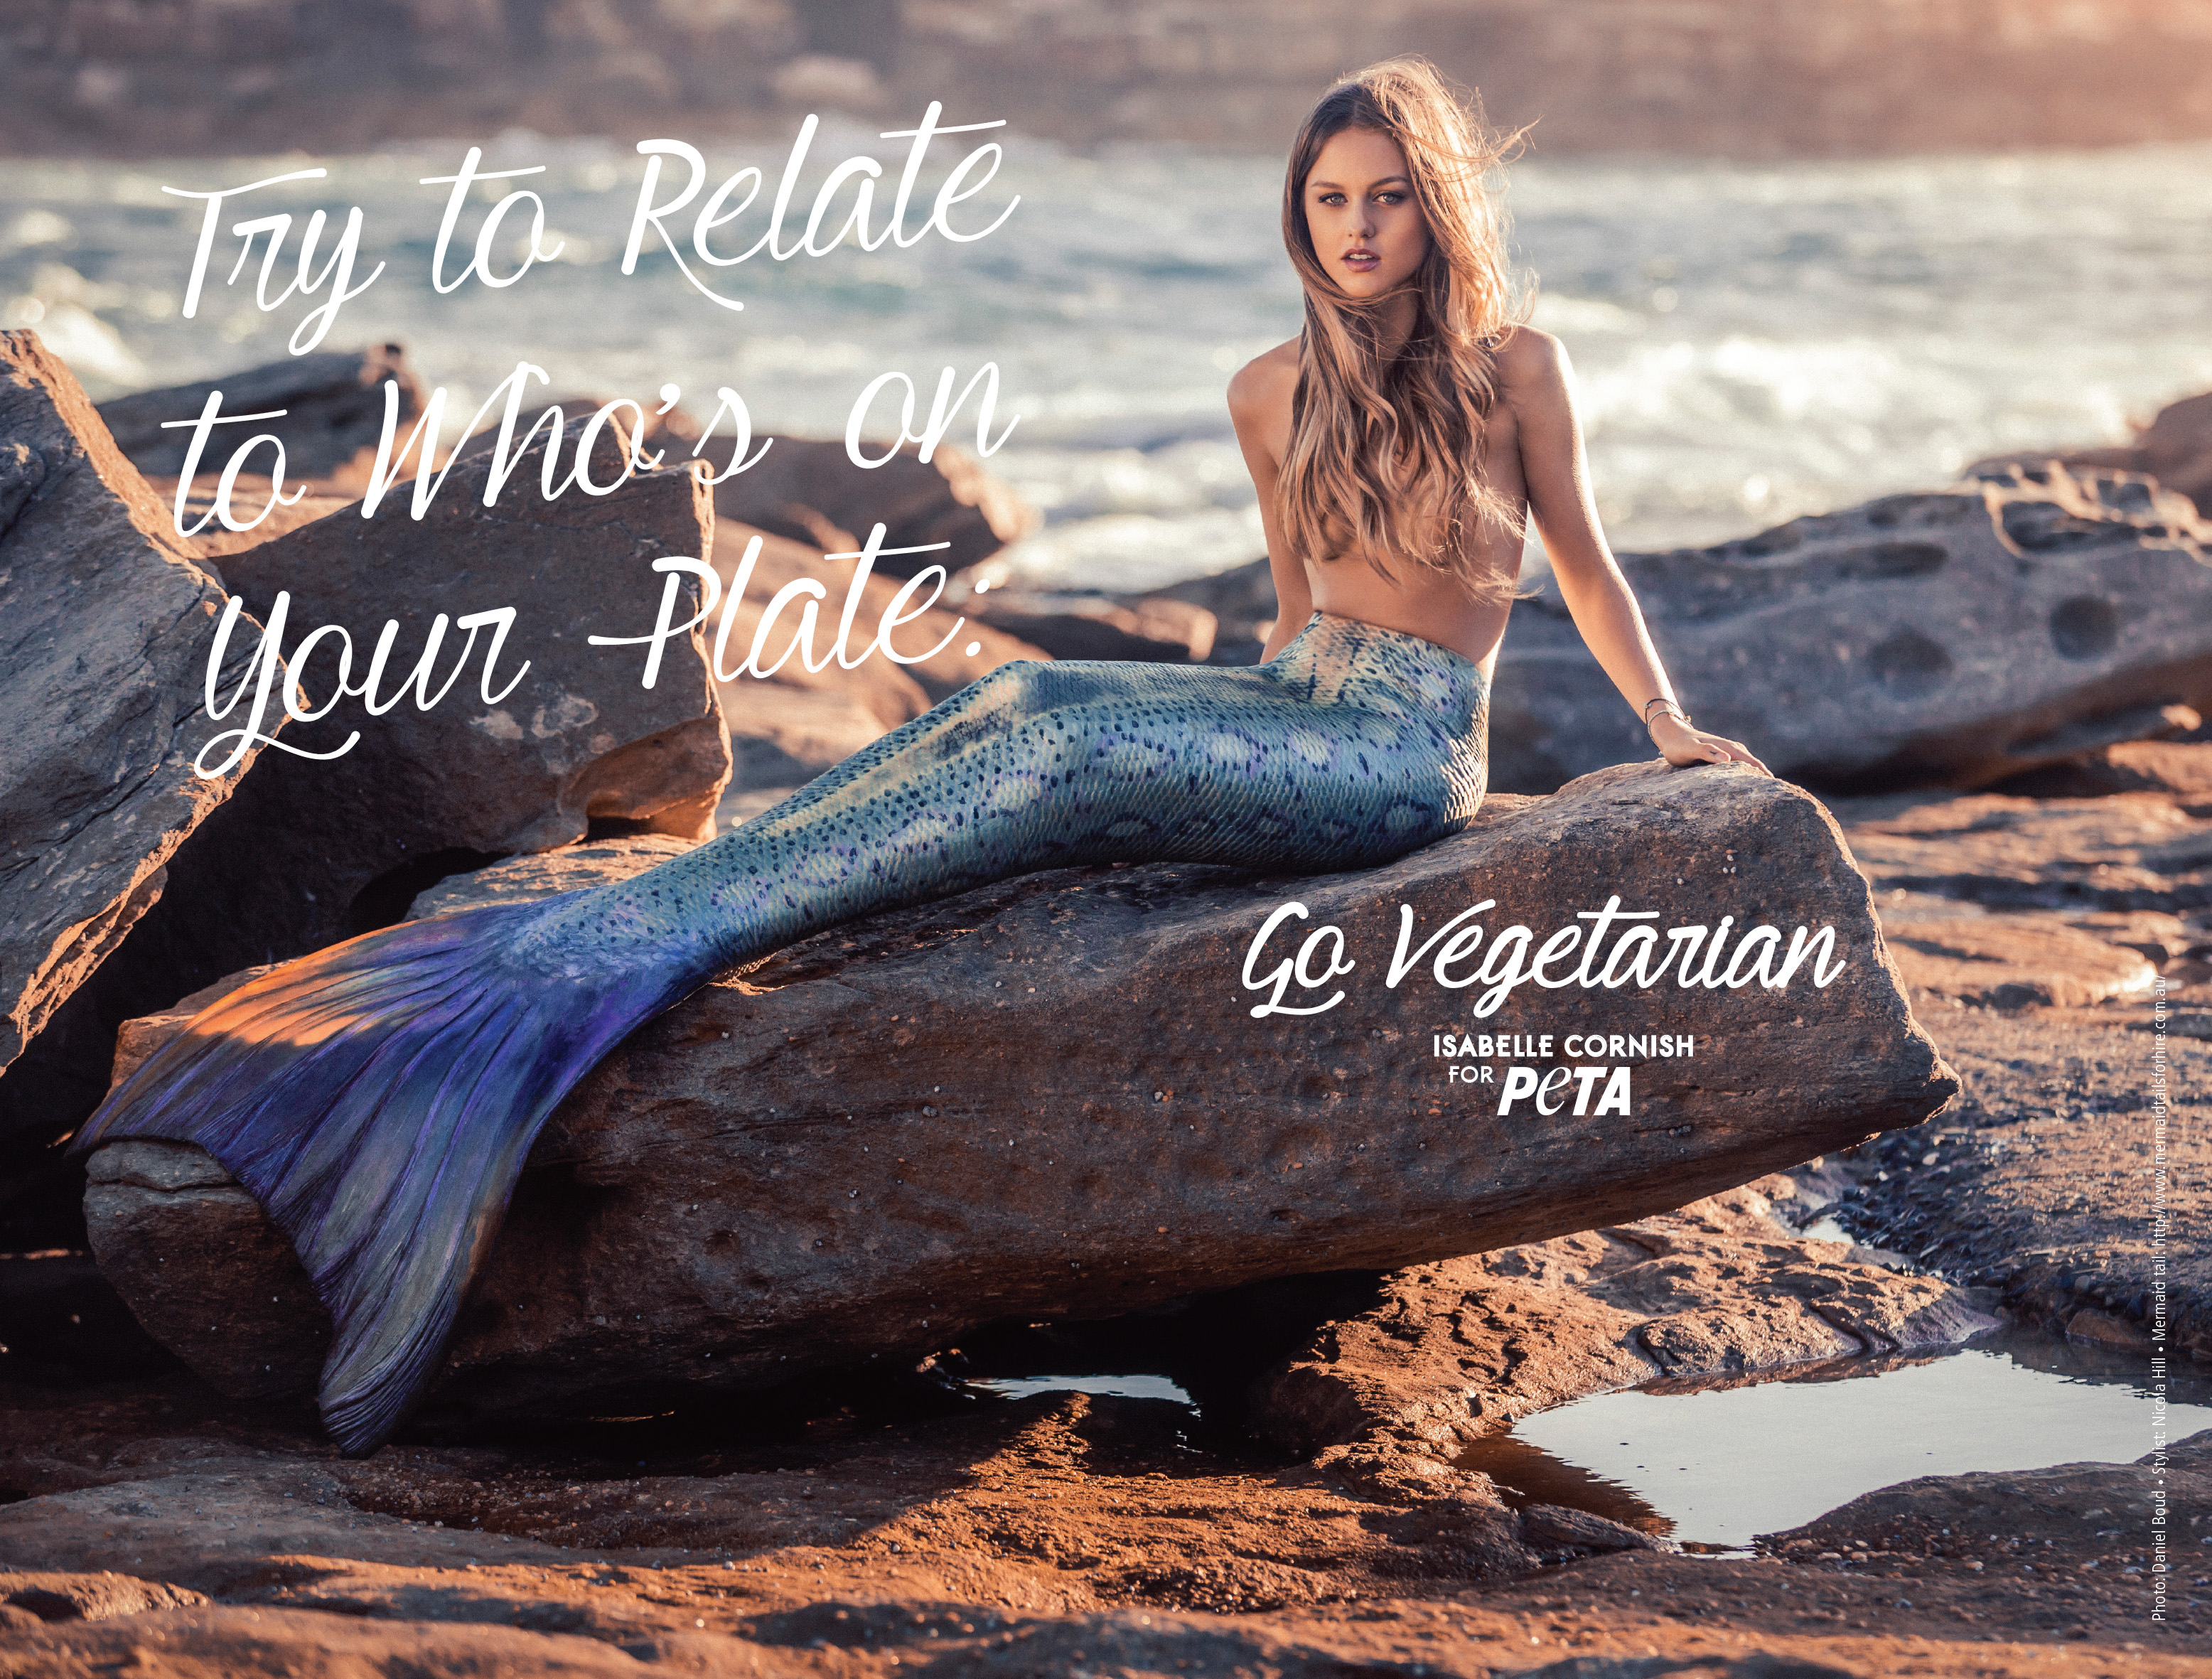 Isabelle Cornish Channels Her Inner Mermaid in New PETA Ad